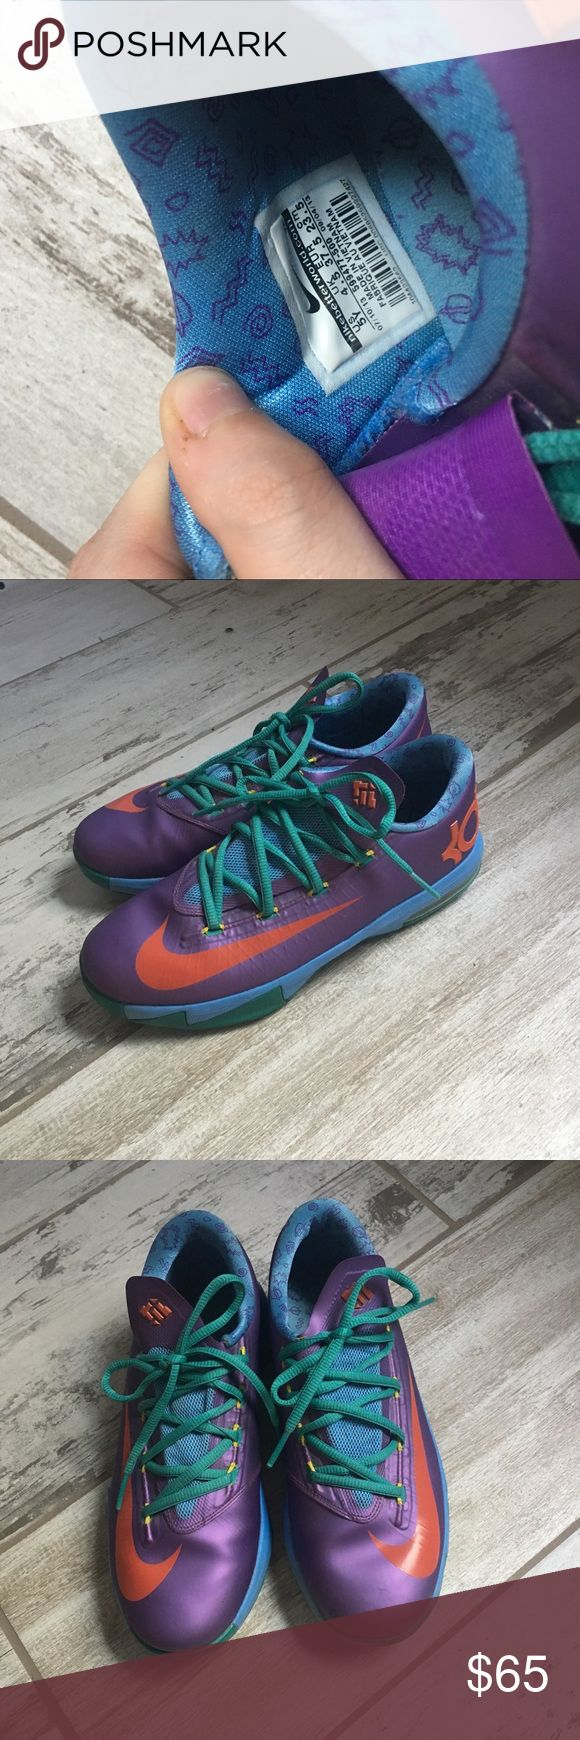 KD Sneakers (Kevin Durant) KD basketball sneakers, like new. Hardly ever worn, and they now just sit in my closet collecting dust. Super cool shoes. Looks good on the court or with jeans. Kids size 5 women's size 7! Nike Shoes Athletic Shoes